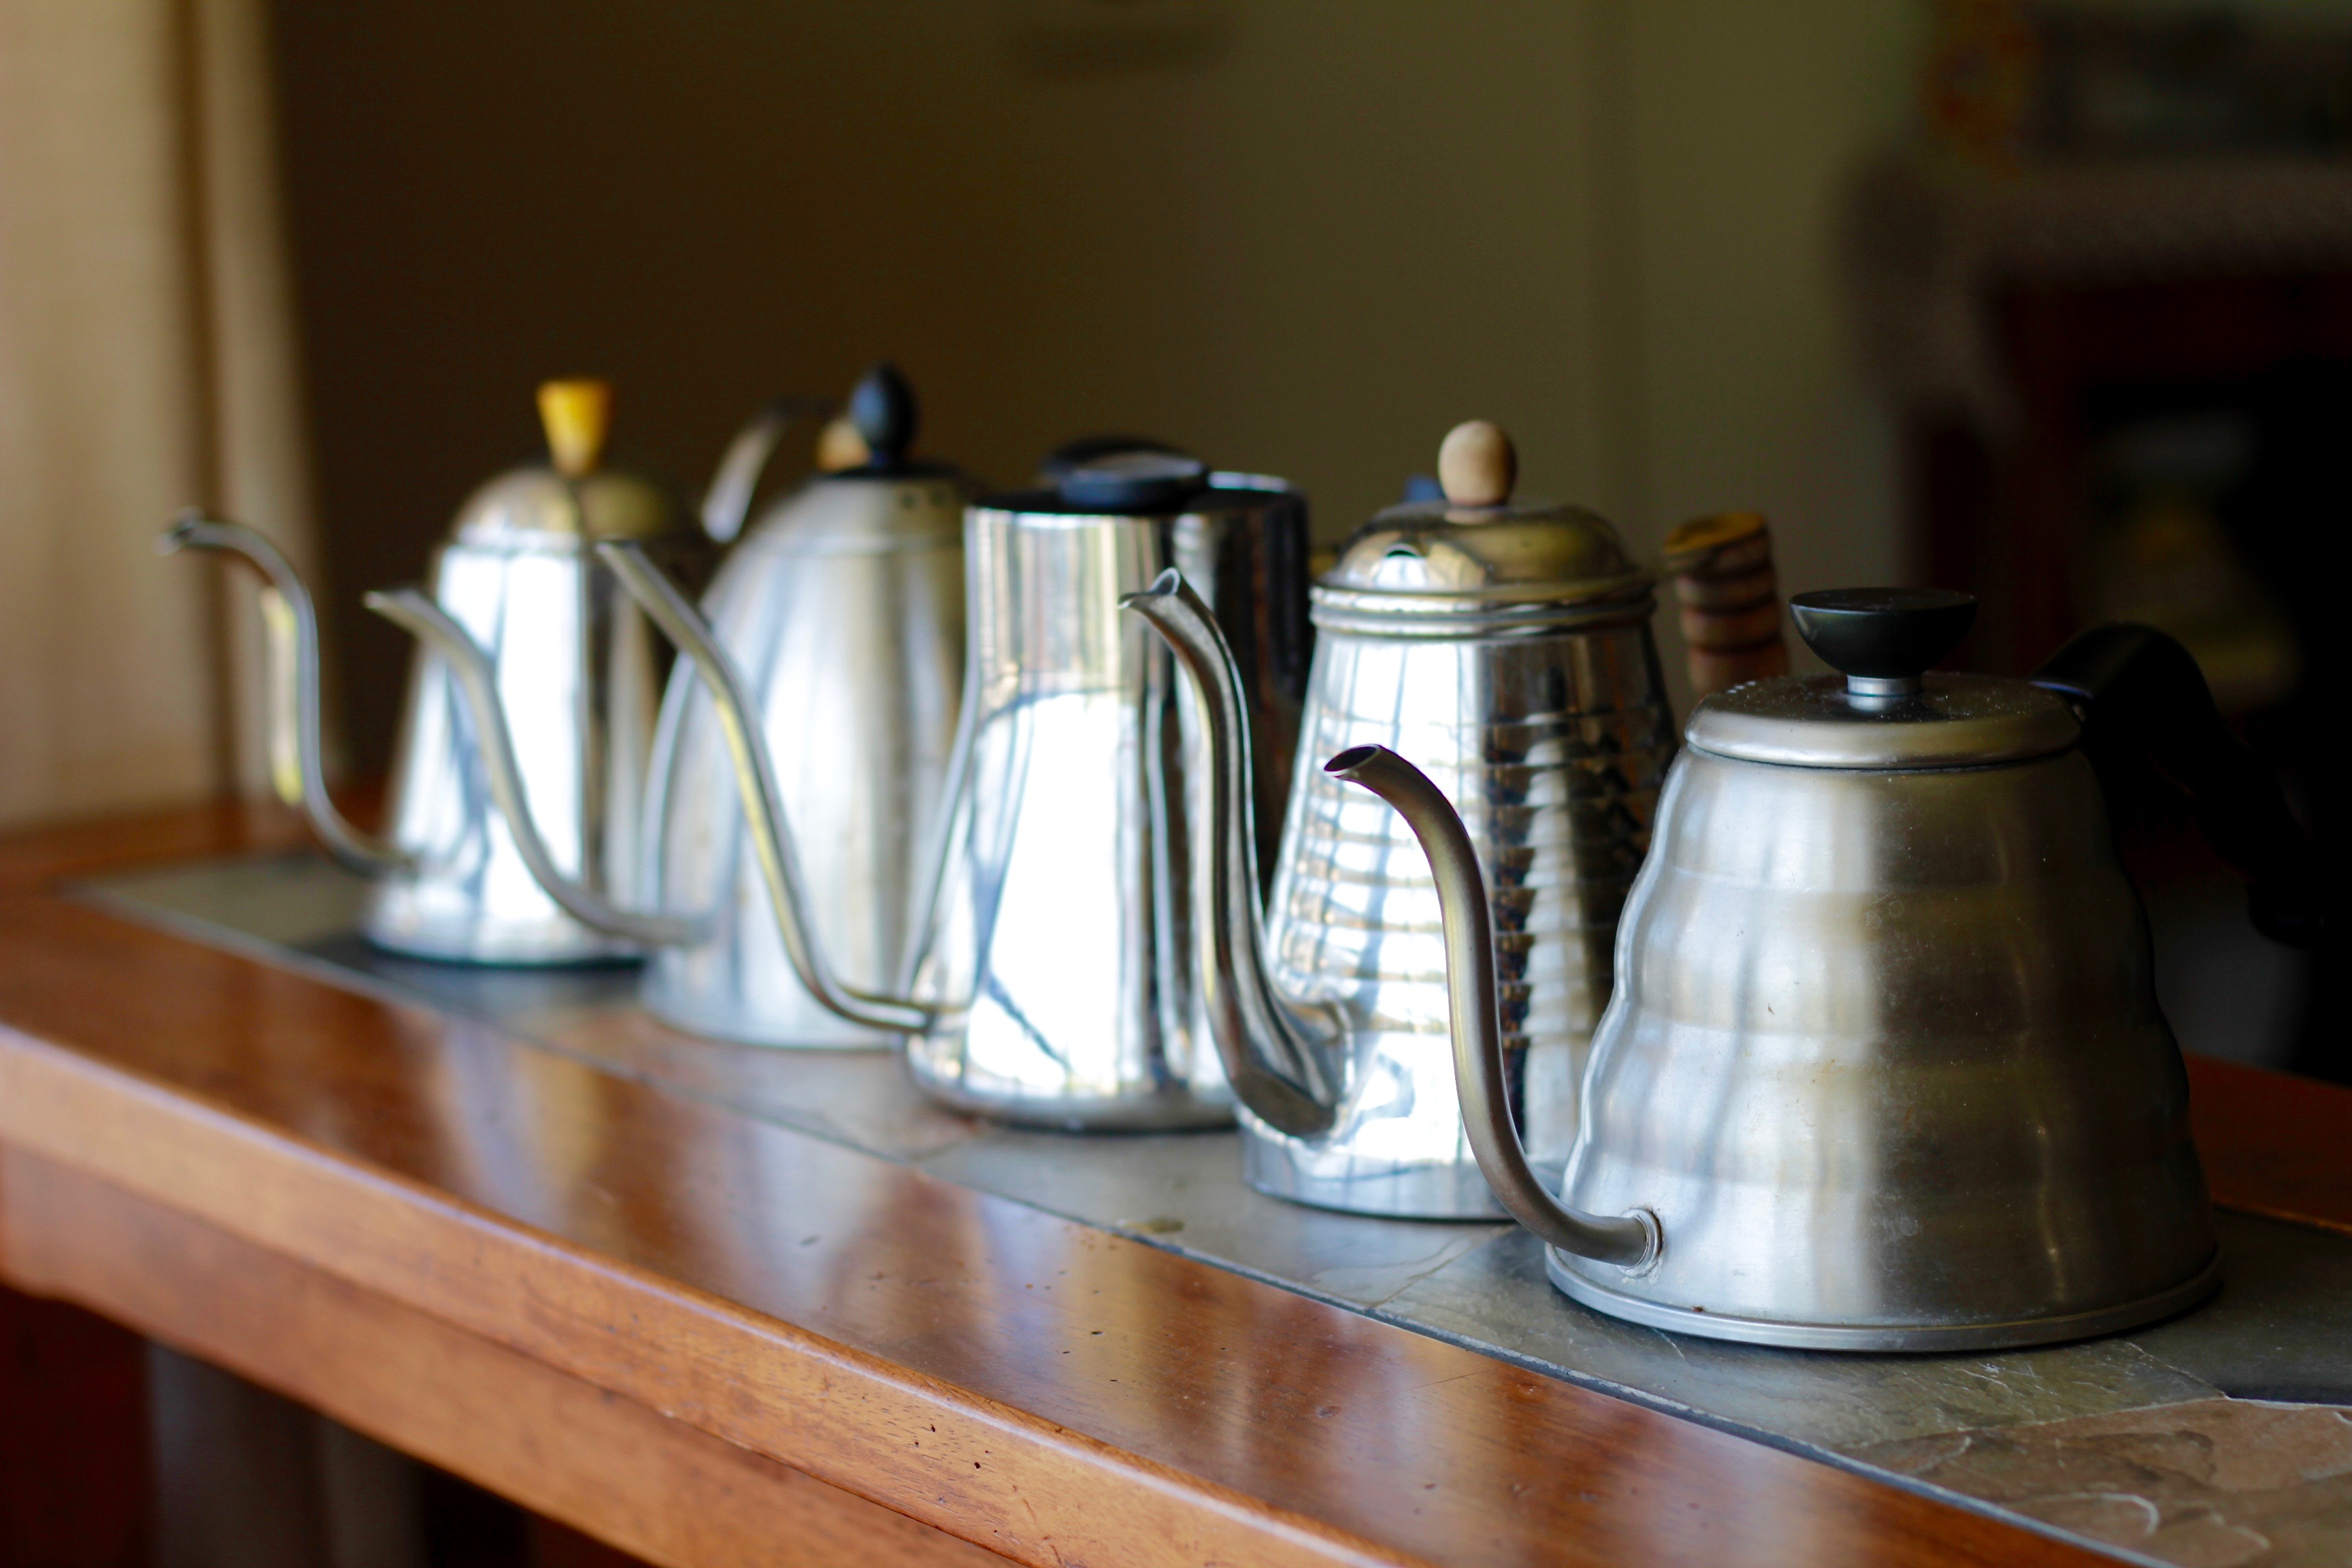 Gadget Review: Five of the Best Coffee Pour-Over Kettles